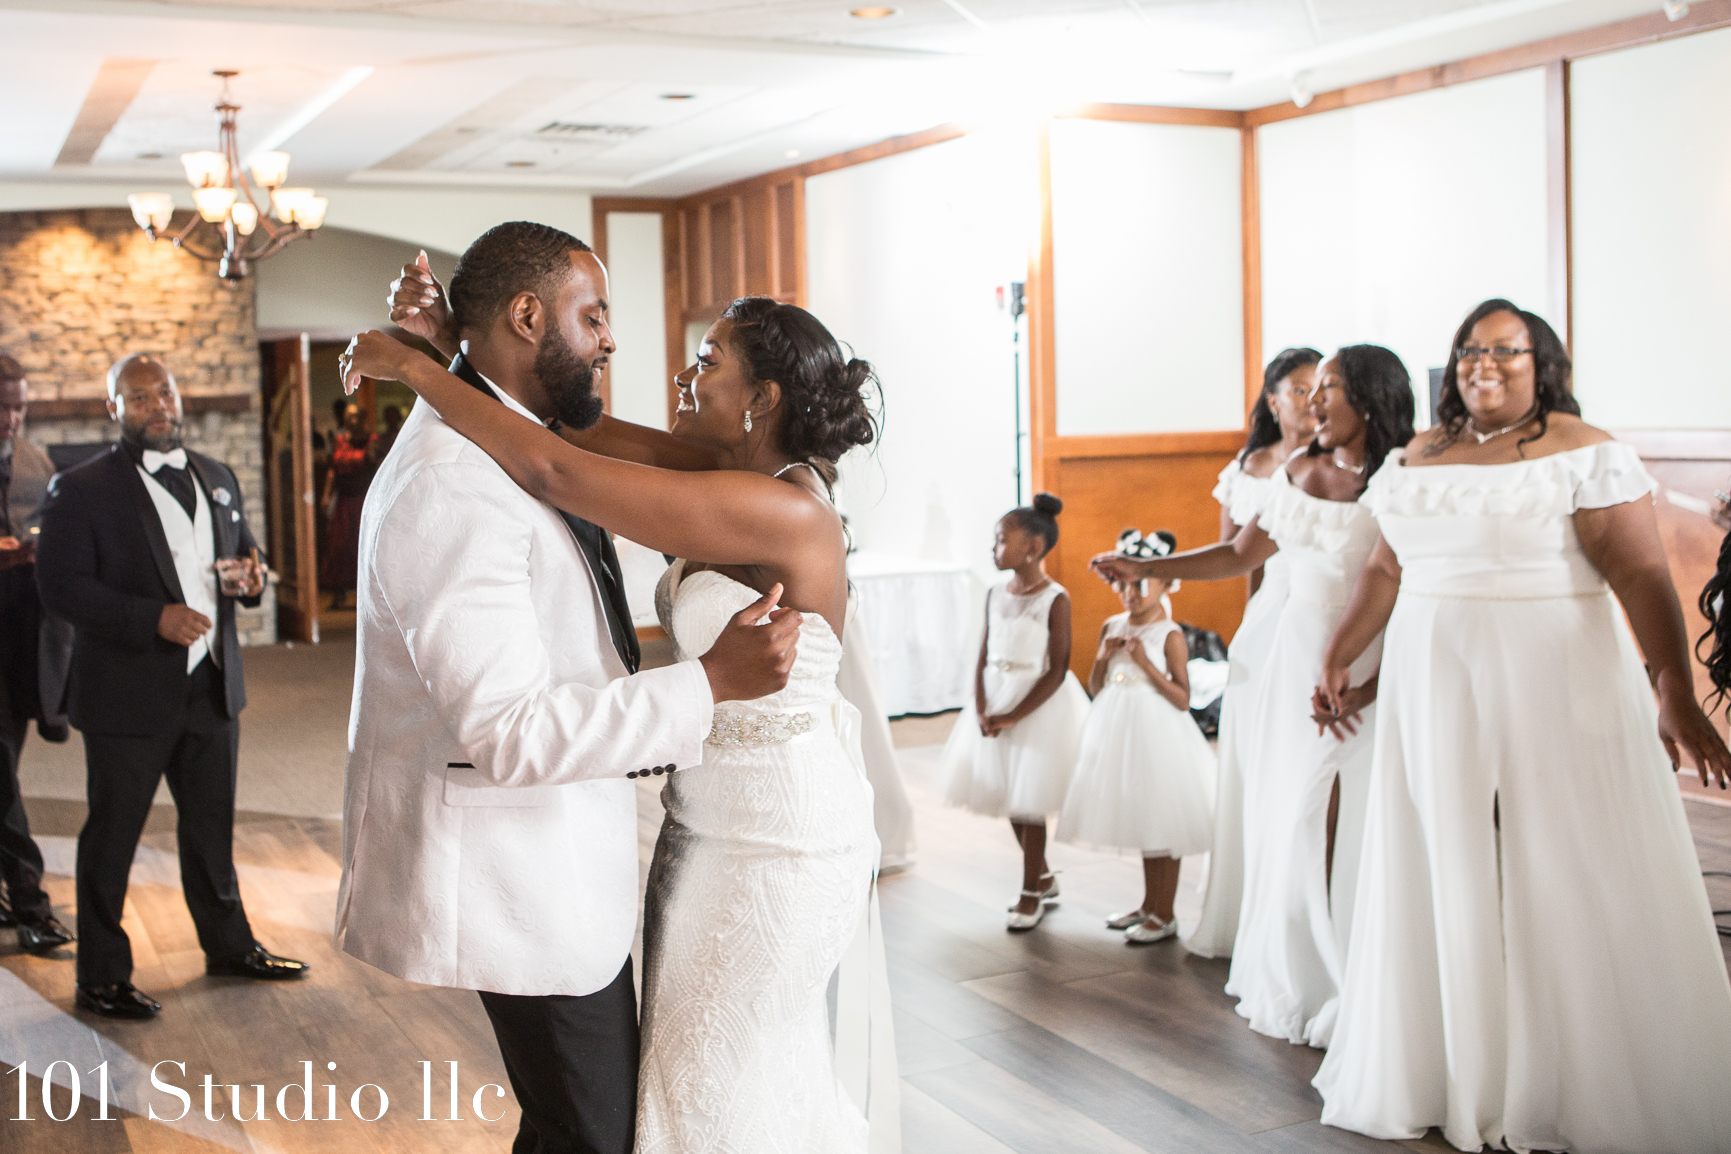 Raleigh wedding photographer - 101 studio llc -32.jpg